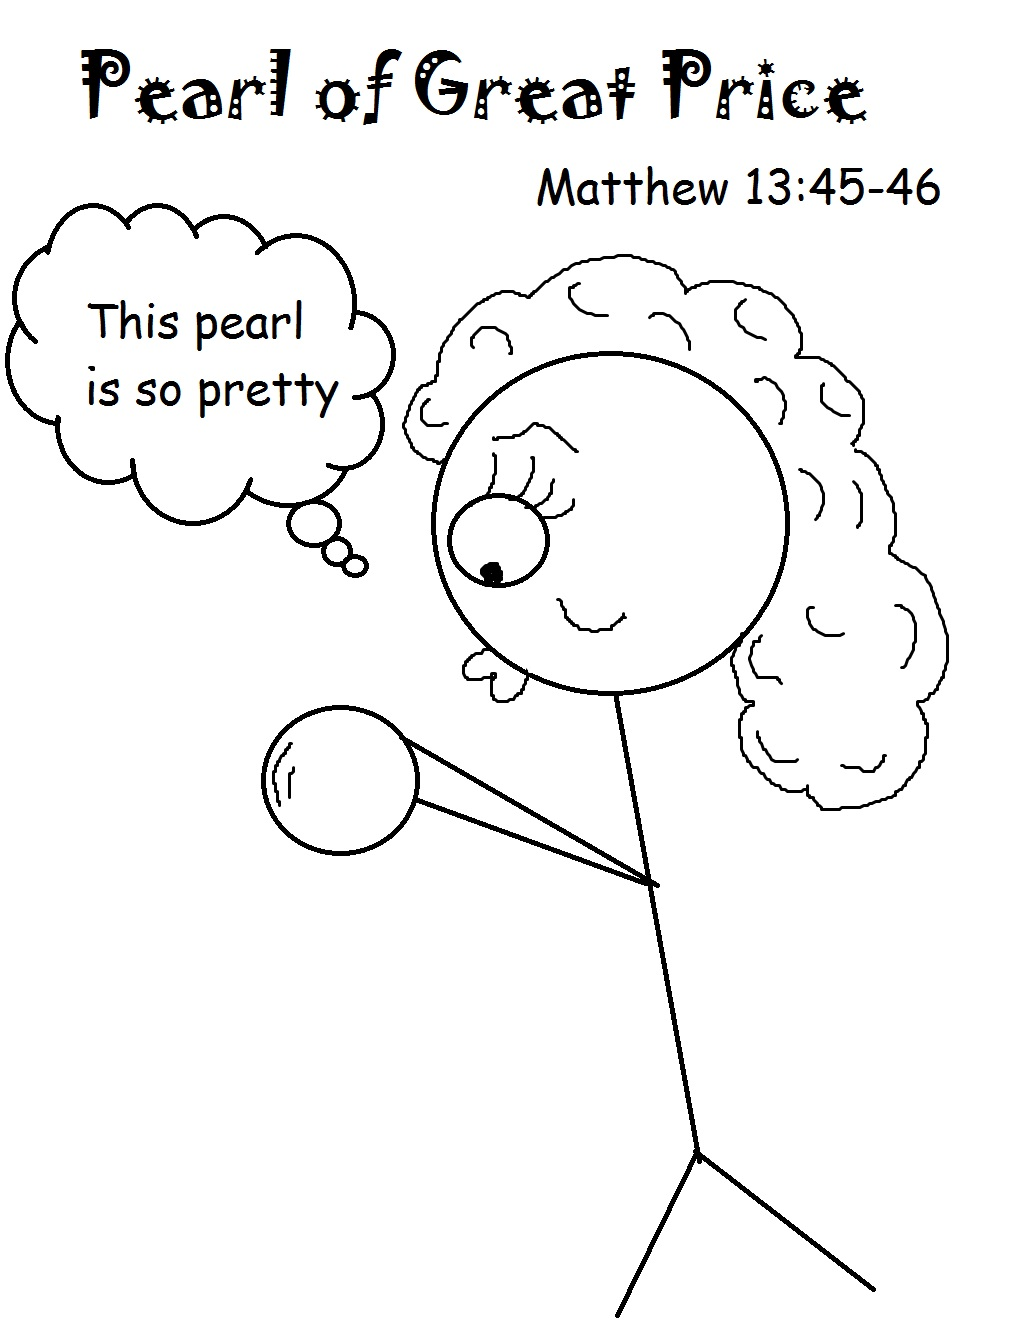 the pearl of great price sunday school lesson